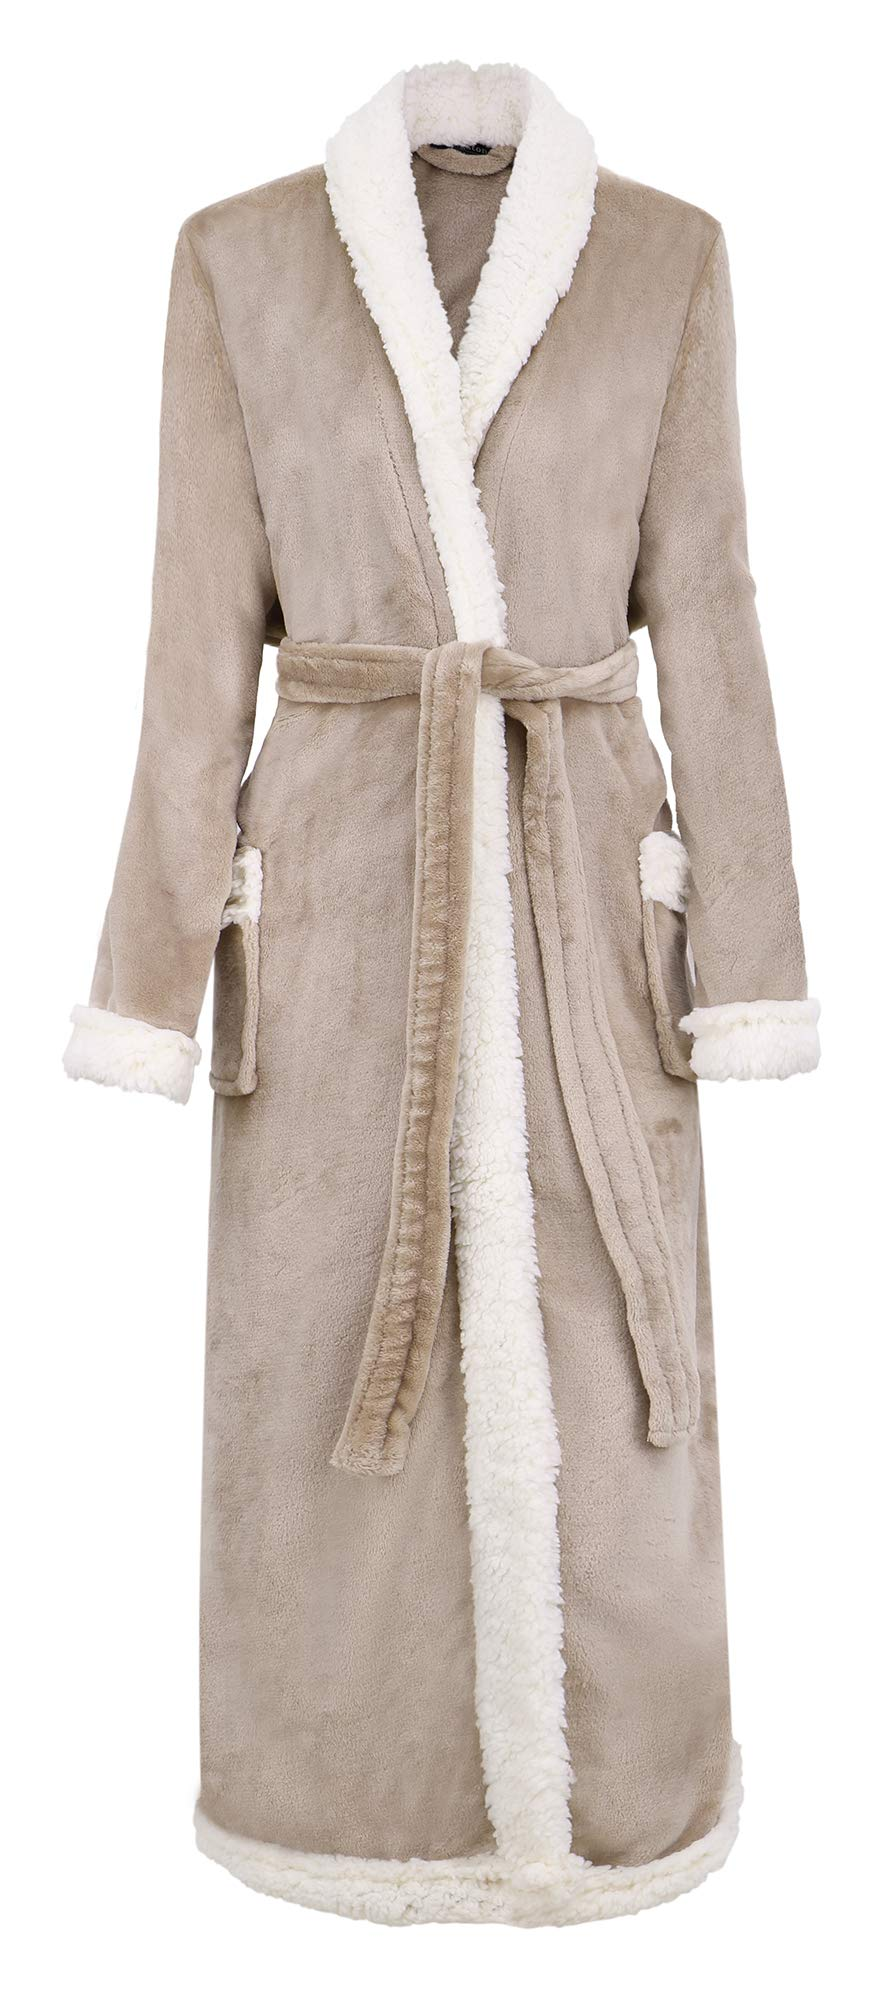 BURKLETT Luxury Sherpa Trim Fleece Long Bath Robe with Pocket